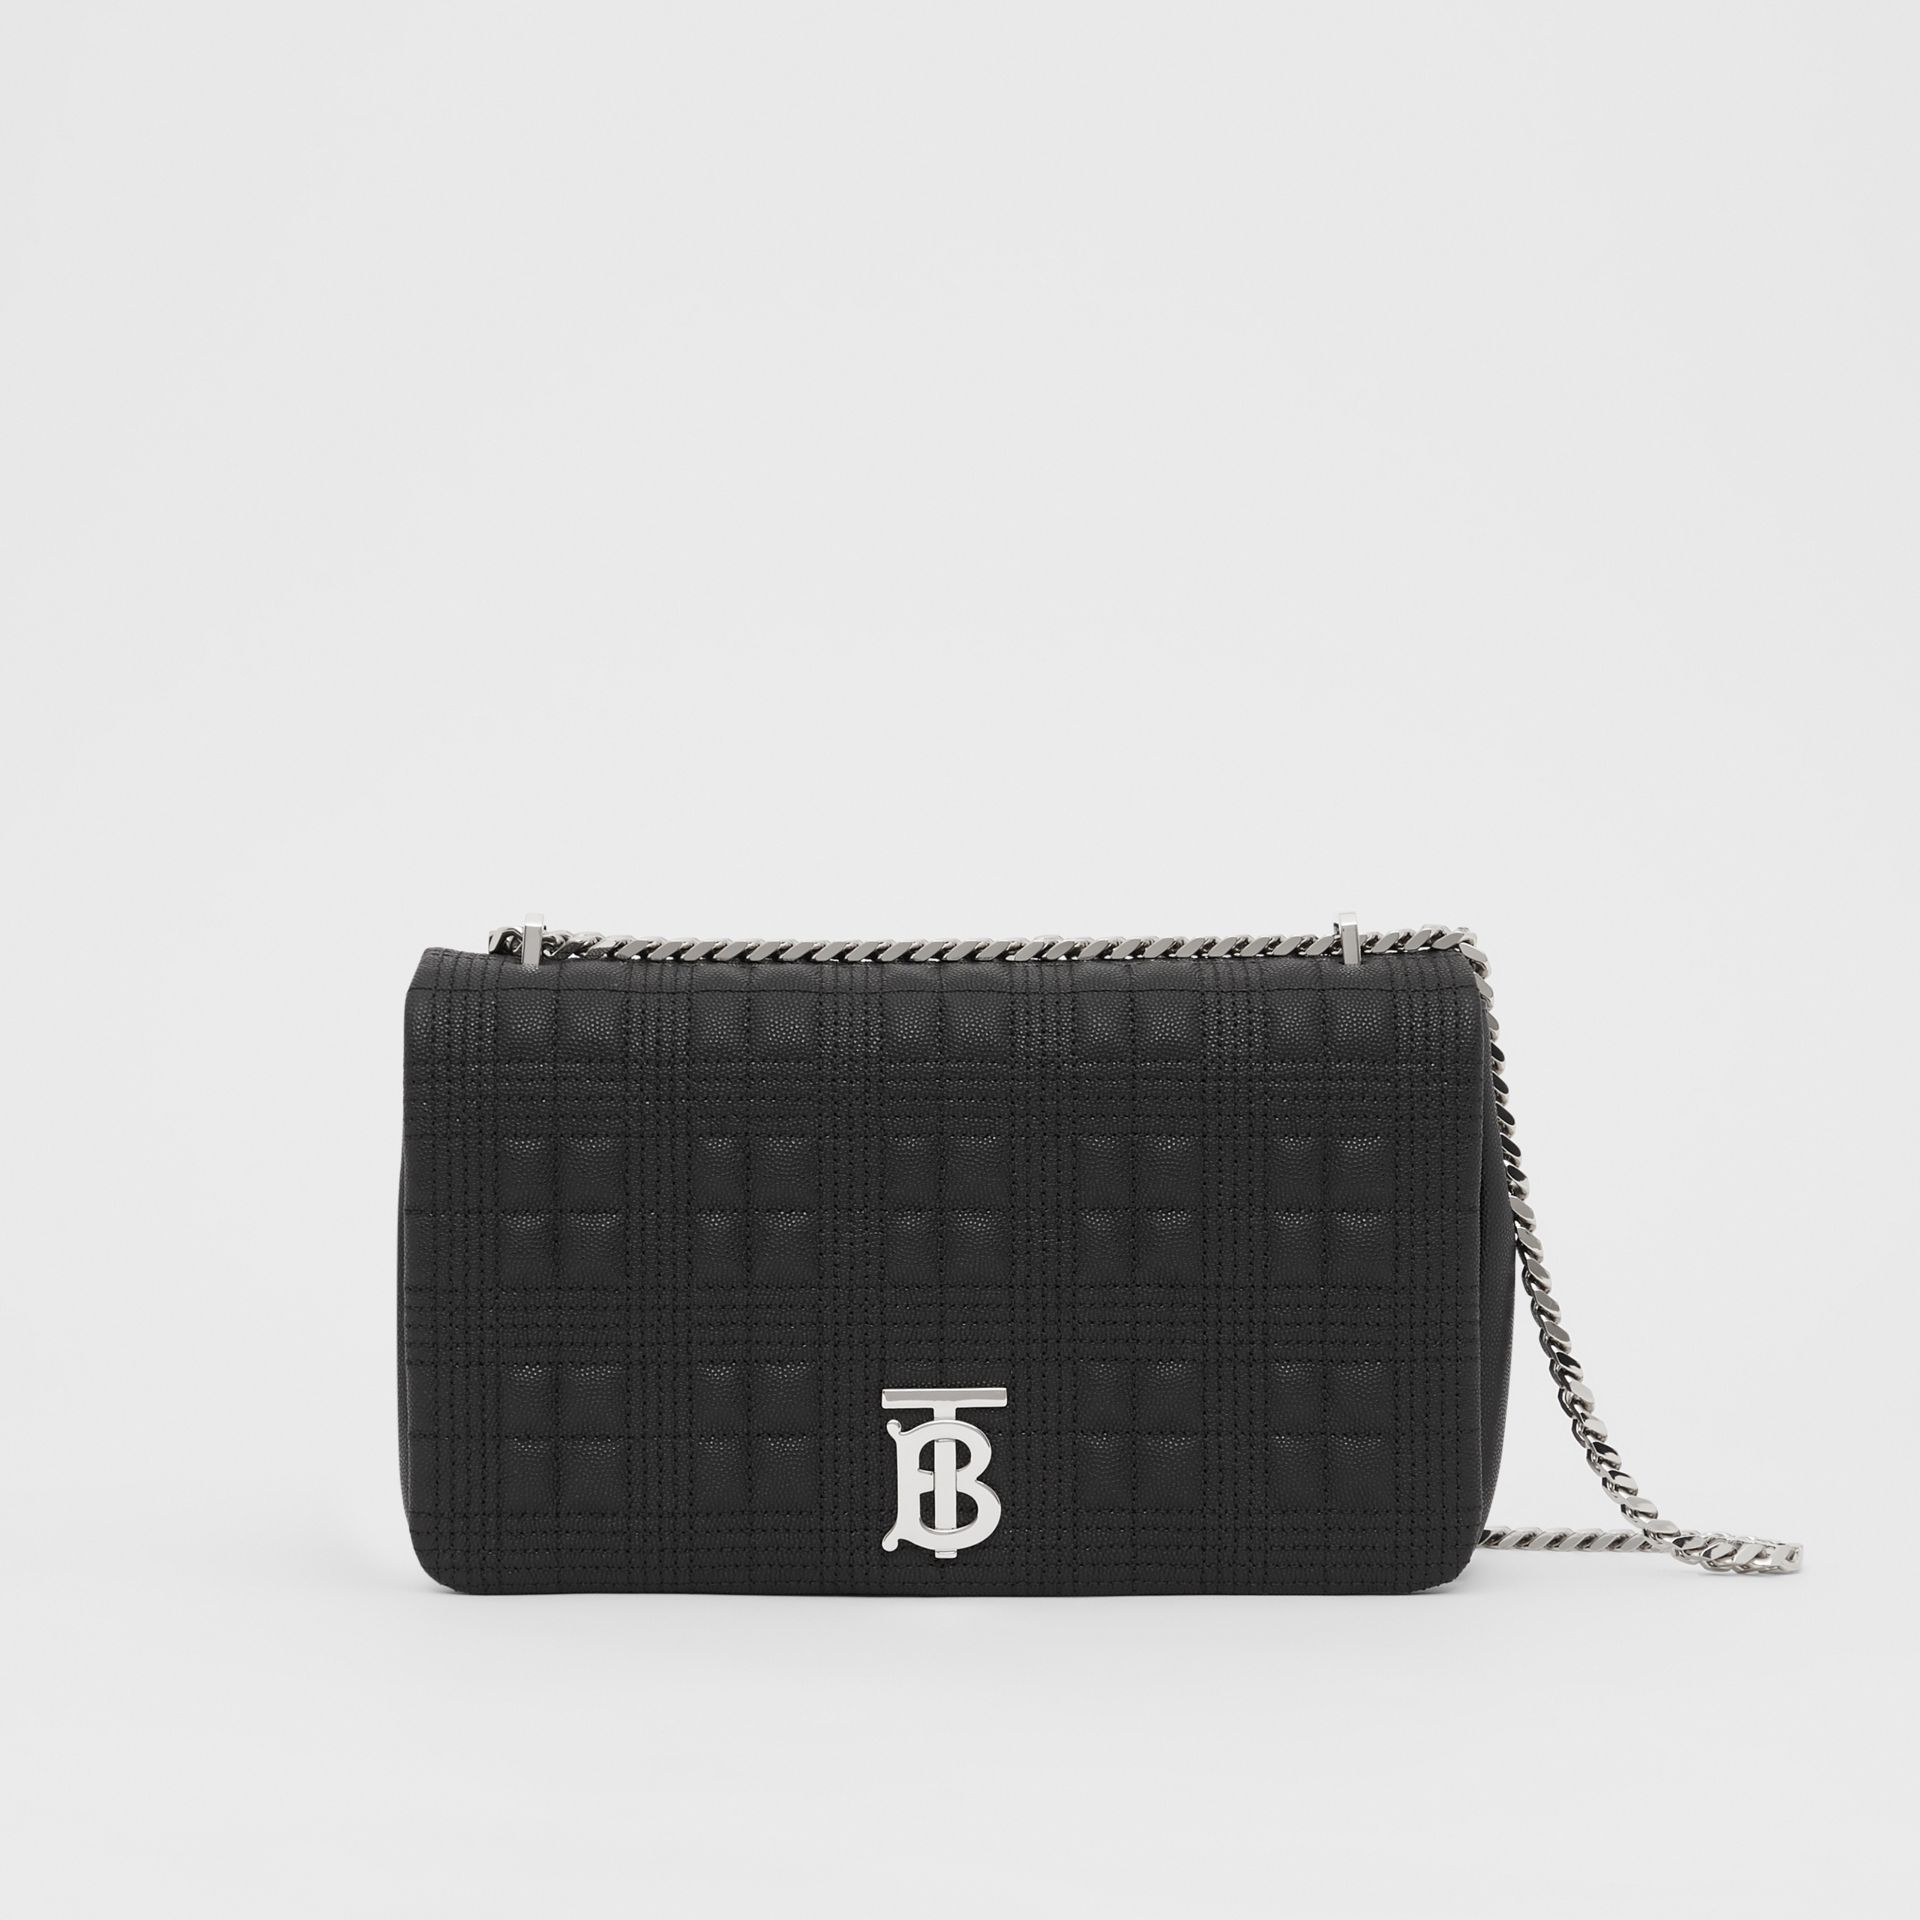 Medium Quilted Grainy Leather Lola Bag in Black - Women | Burberry - gallery image 0